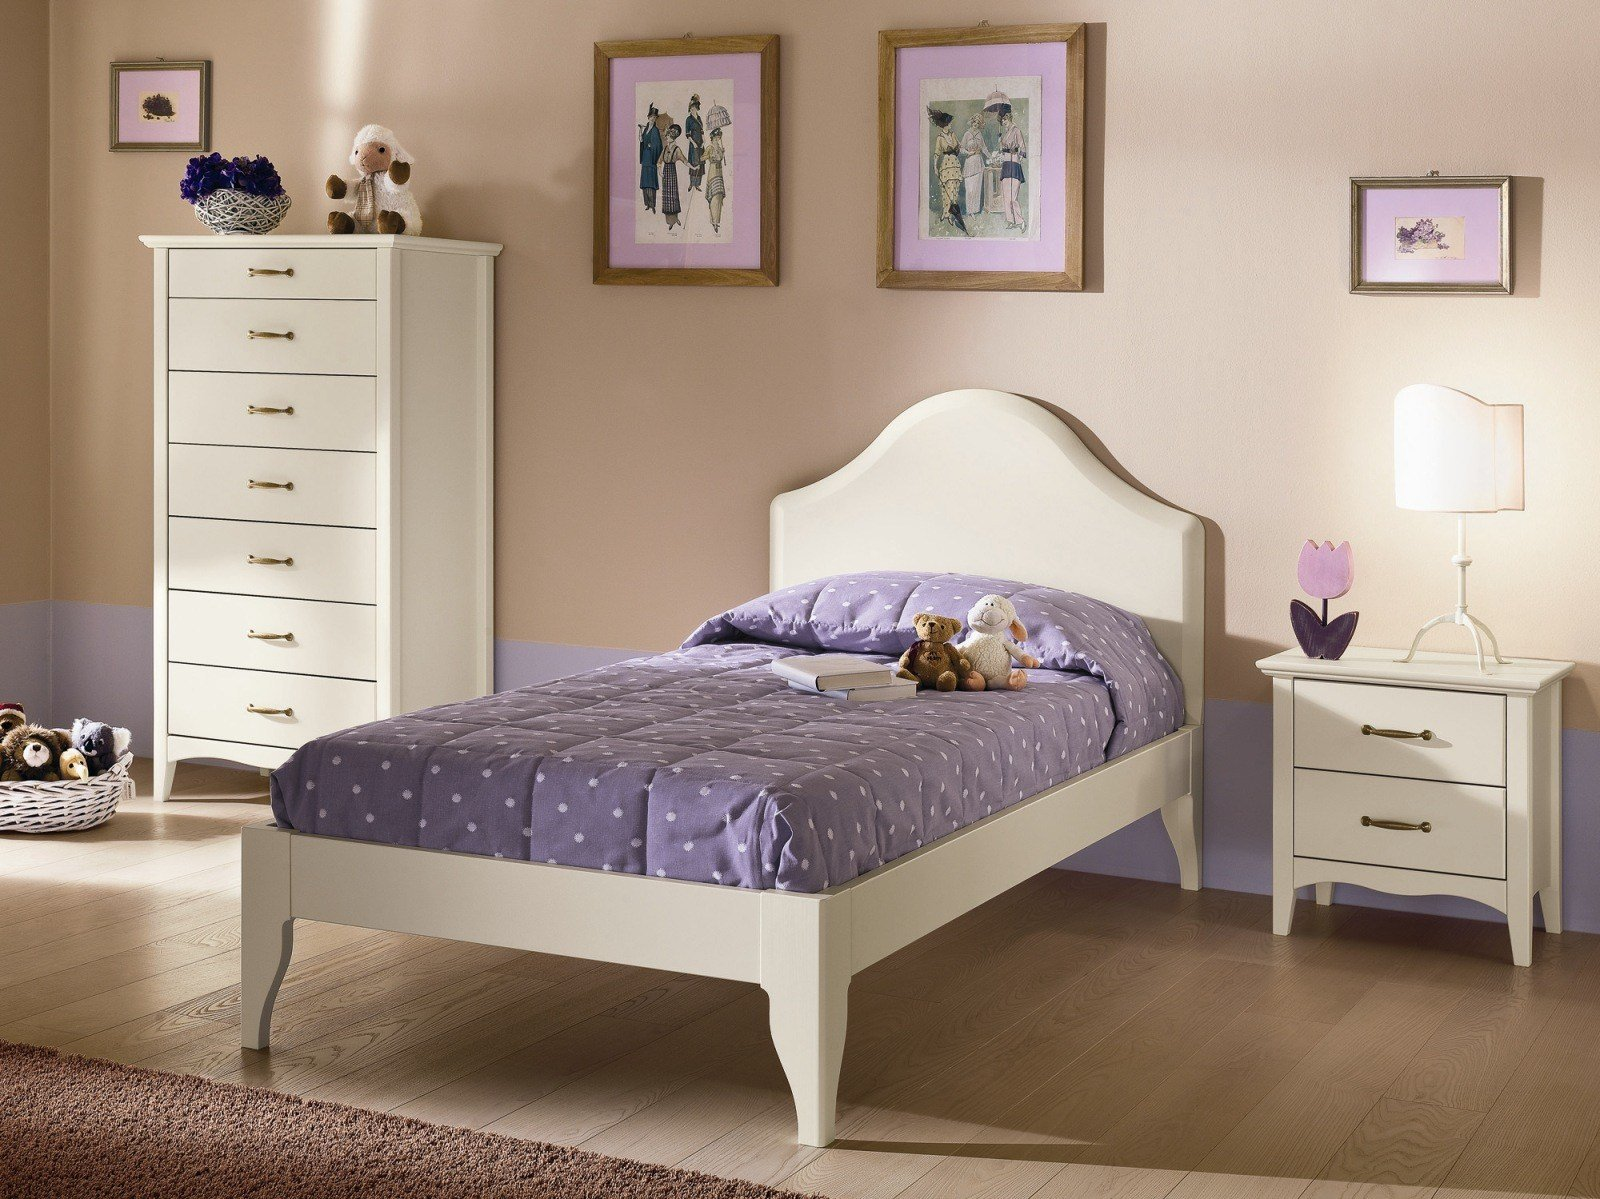 Best Wooden Bedroom Set For Boys Girls Romantic Composition 01 With Pictures